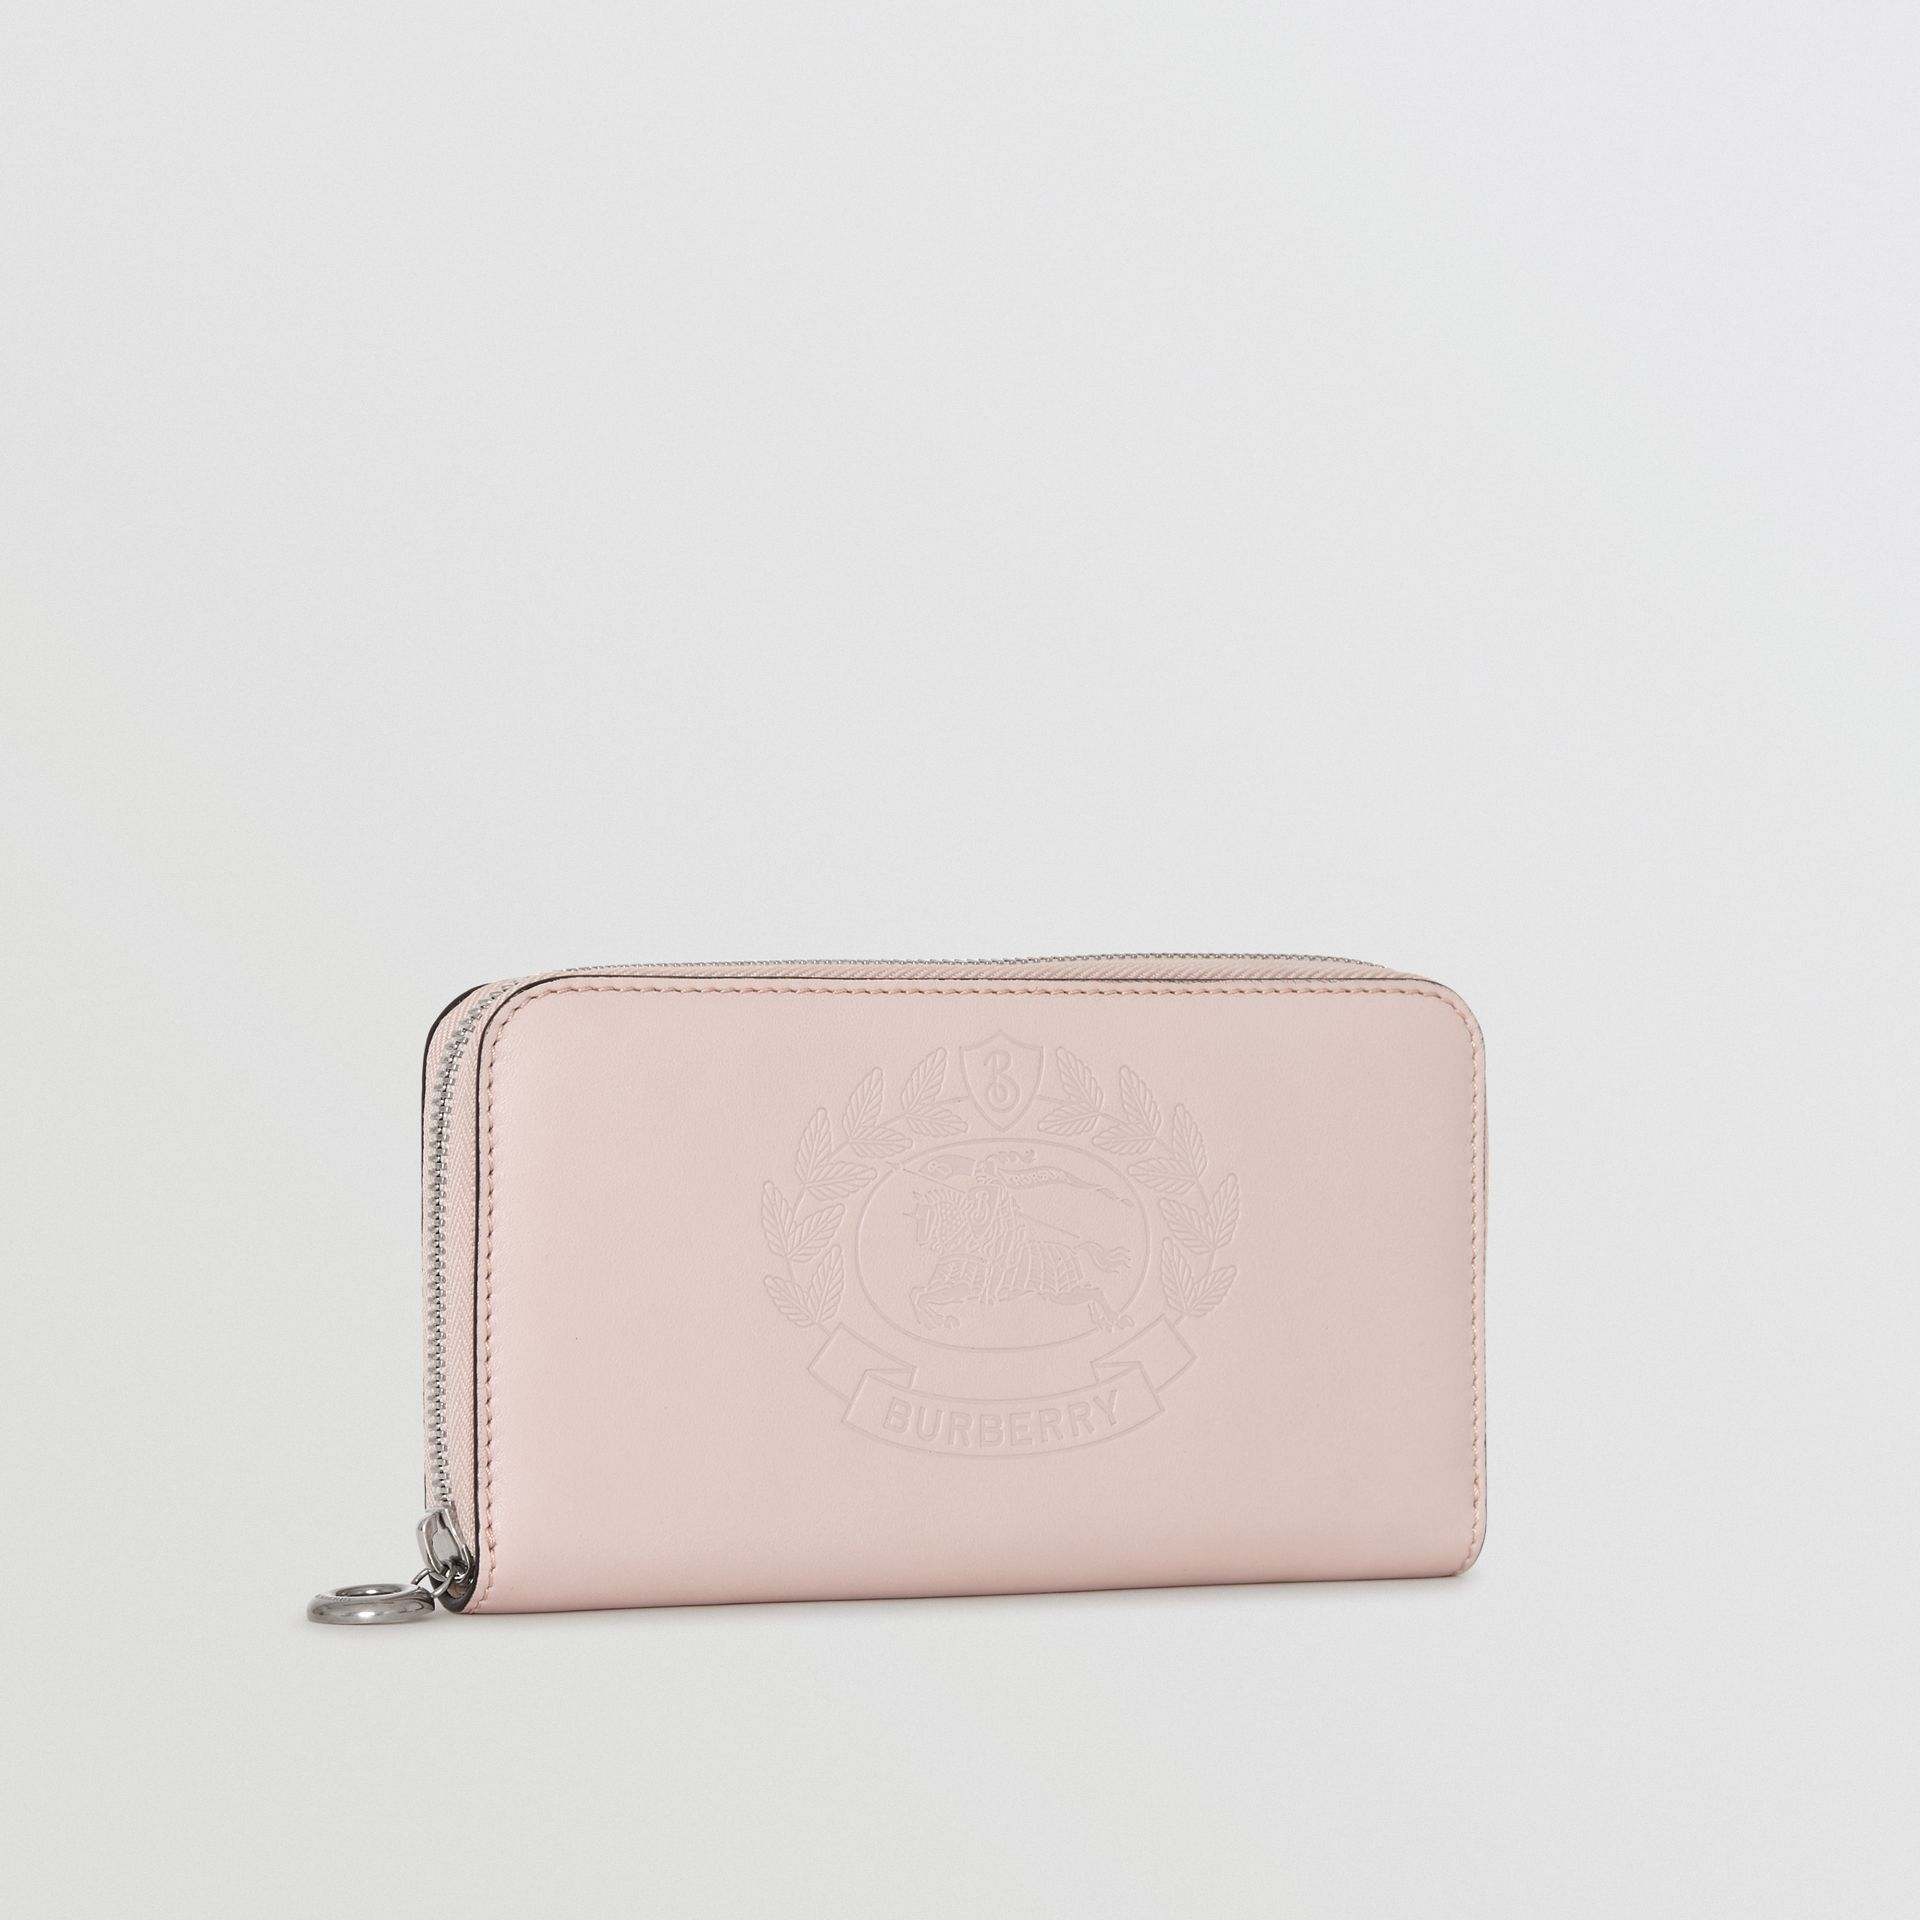 Embossed Crest Two-tone Leather Ziparound Wallet in Chalk Pink - Women | Burberry Hong Kong - gallery image 3